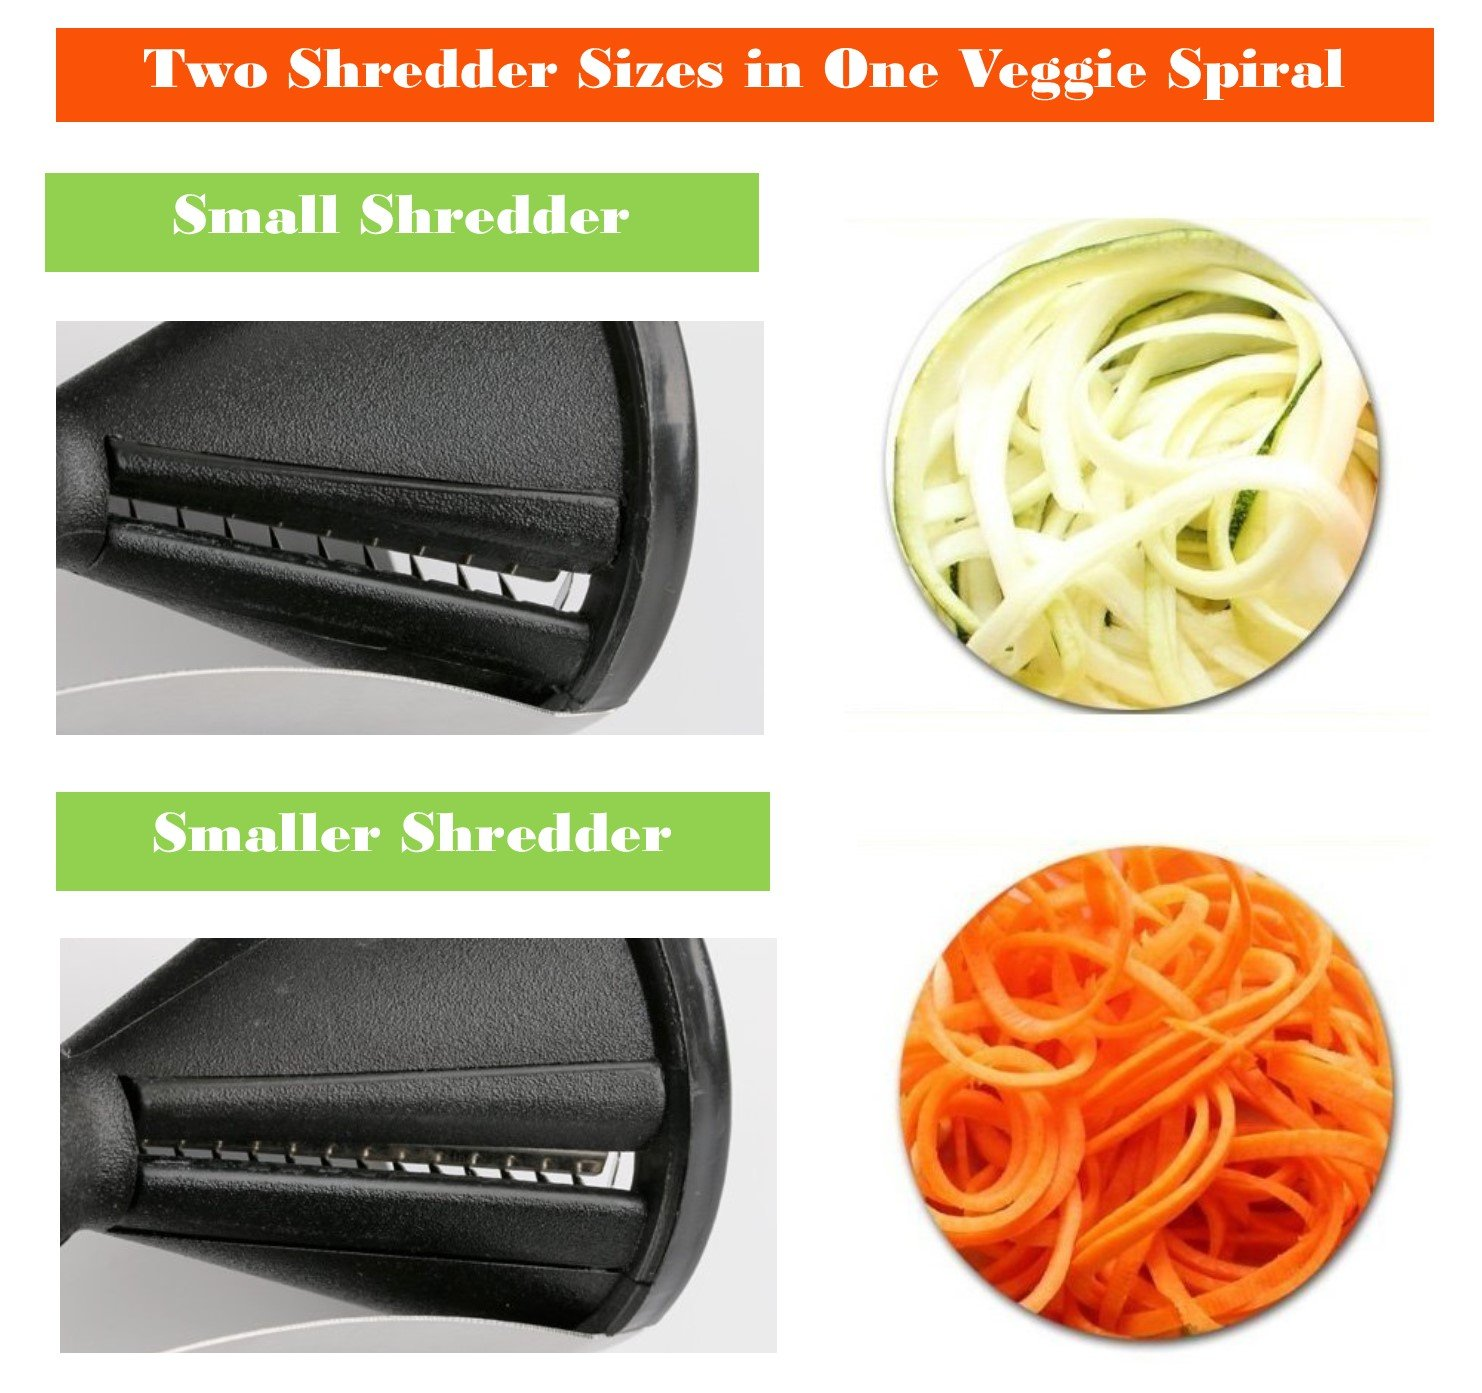 Top Vegetable Spiraler Cutter Slicer Small Green Folding Cutting Board Cheese Zester Kitchen Essential Birthday Present Idea Family Mom Dad Grandpa Brother Chef Cook Set Best Stocking Stuffer College by JCCentral (Image #2)